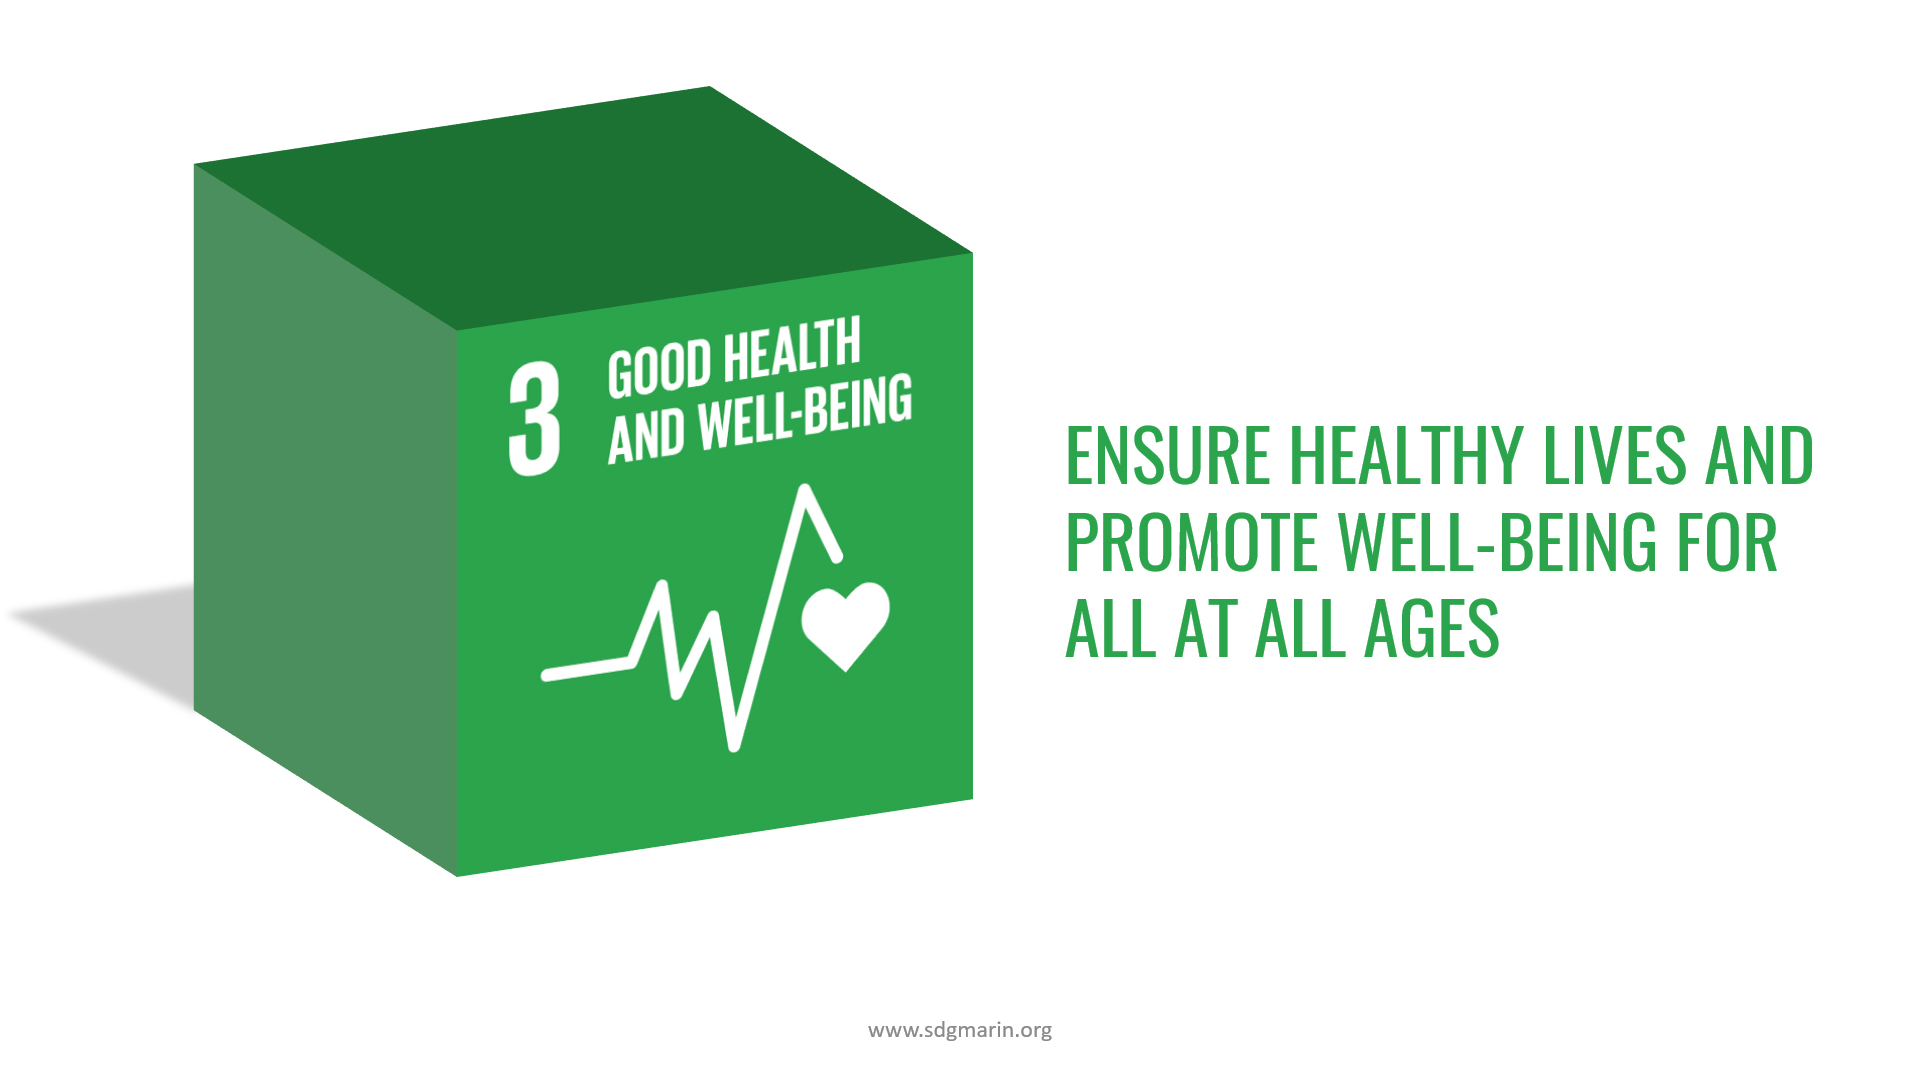 UN SDG #3 Good Health and Well-Being 3D image with Text